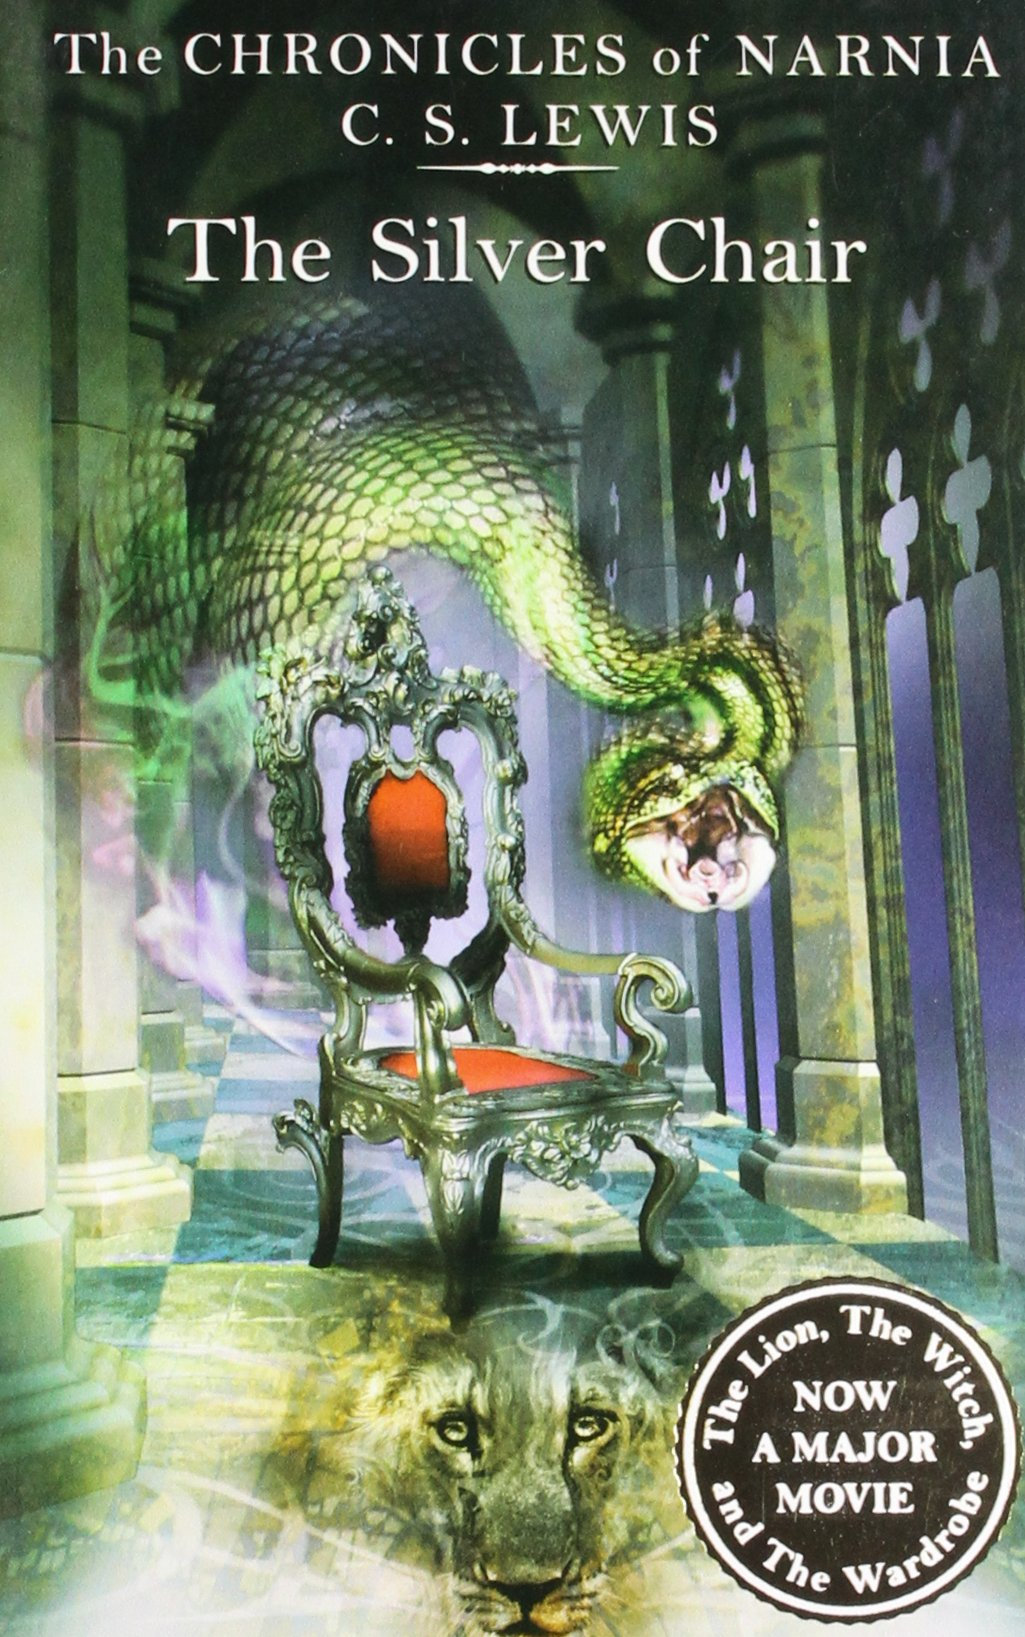 The chronicles of narnia the silver chair books to read photo - Buy The Silver Chair Book Online At Low Prices In India The Silver Chair Reviews Ratings Amazon In